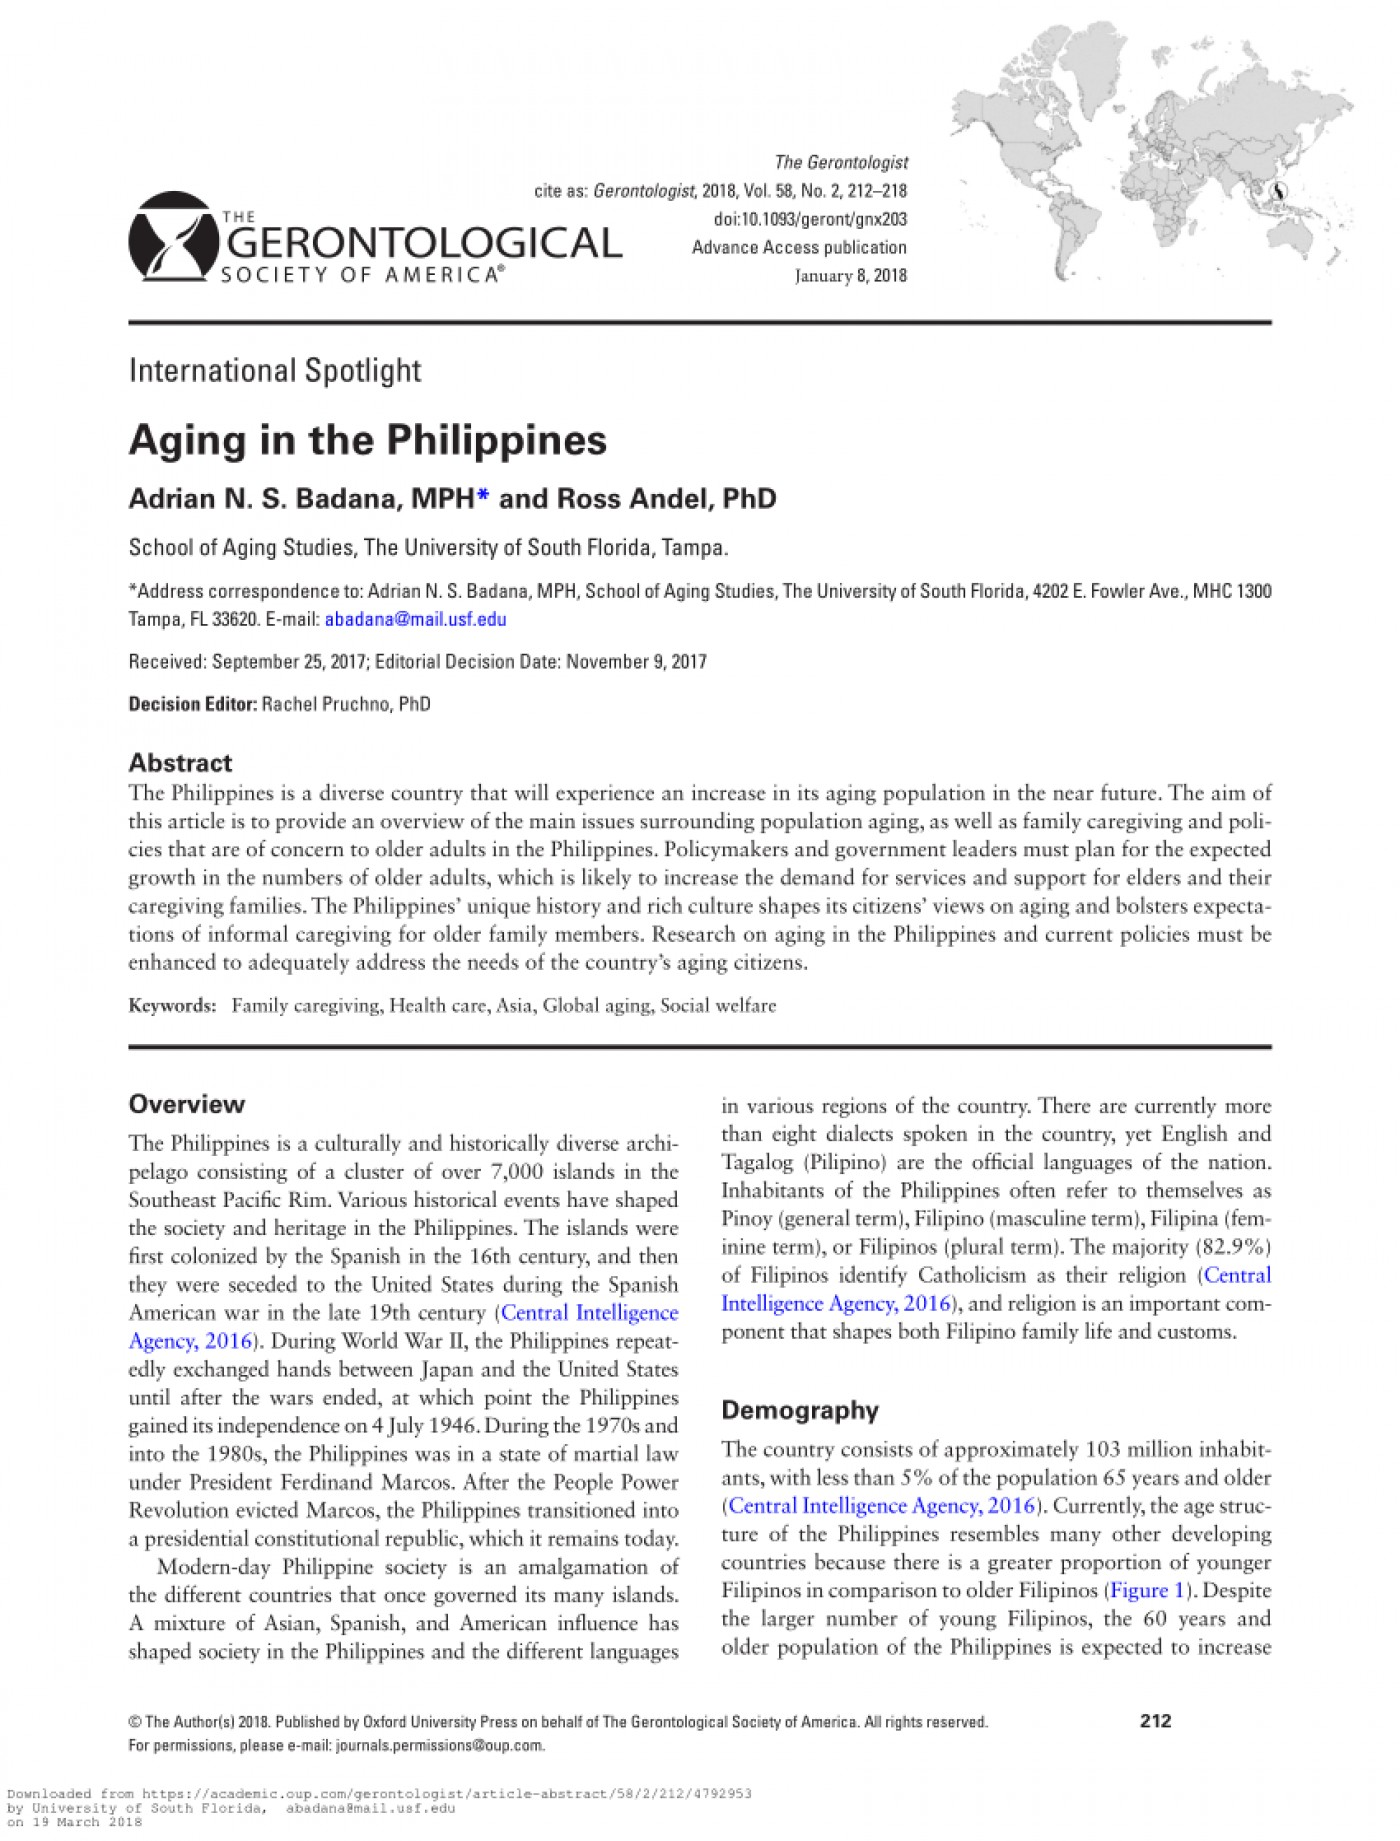 005 Poverty In The Philippines Research Paper Abstract Remarkable 1400